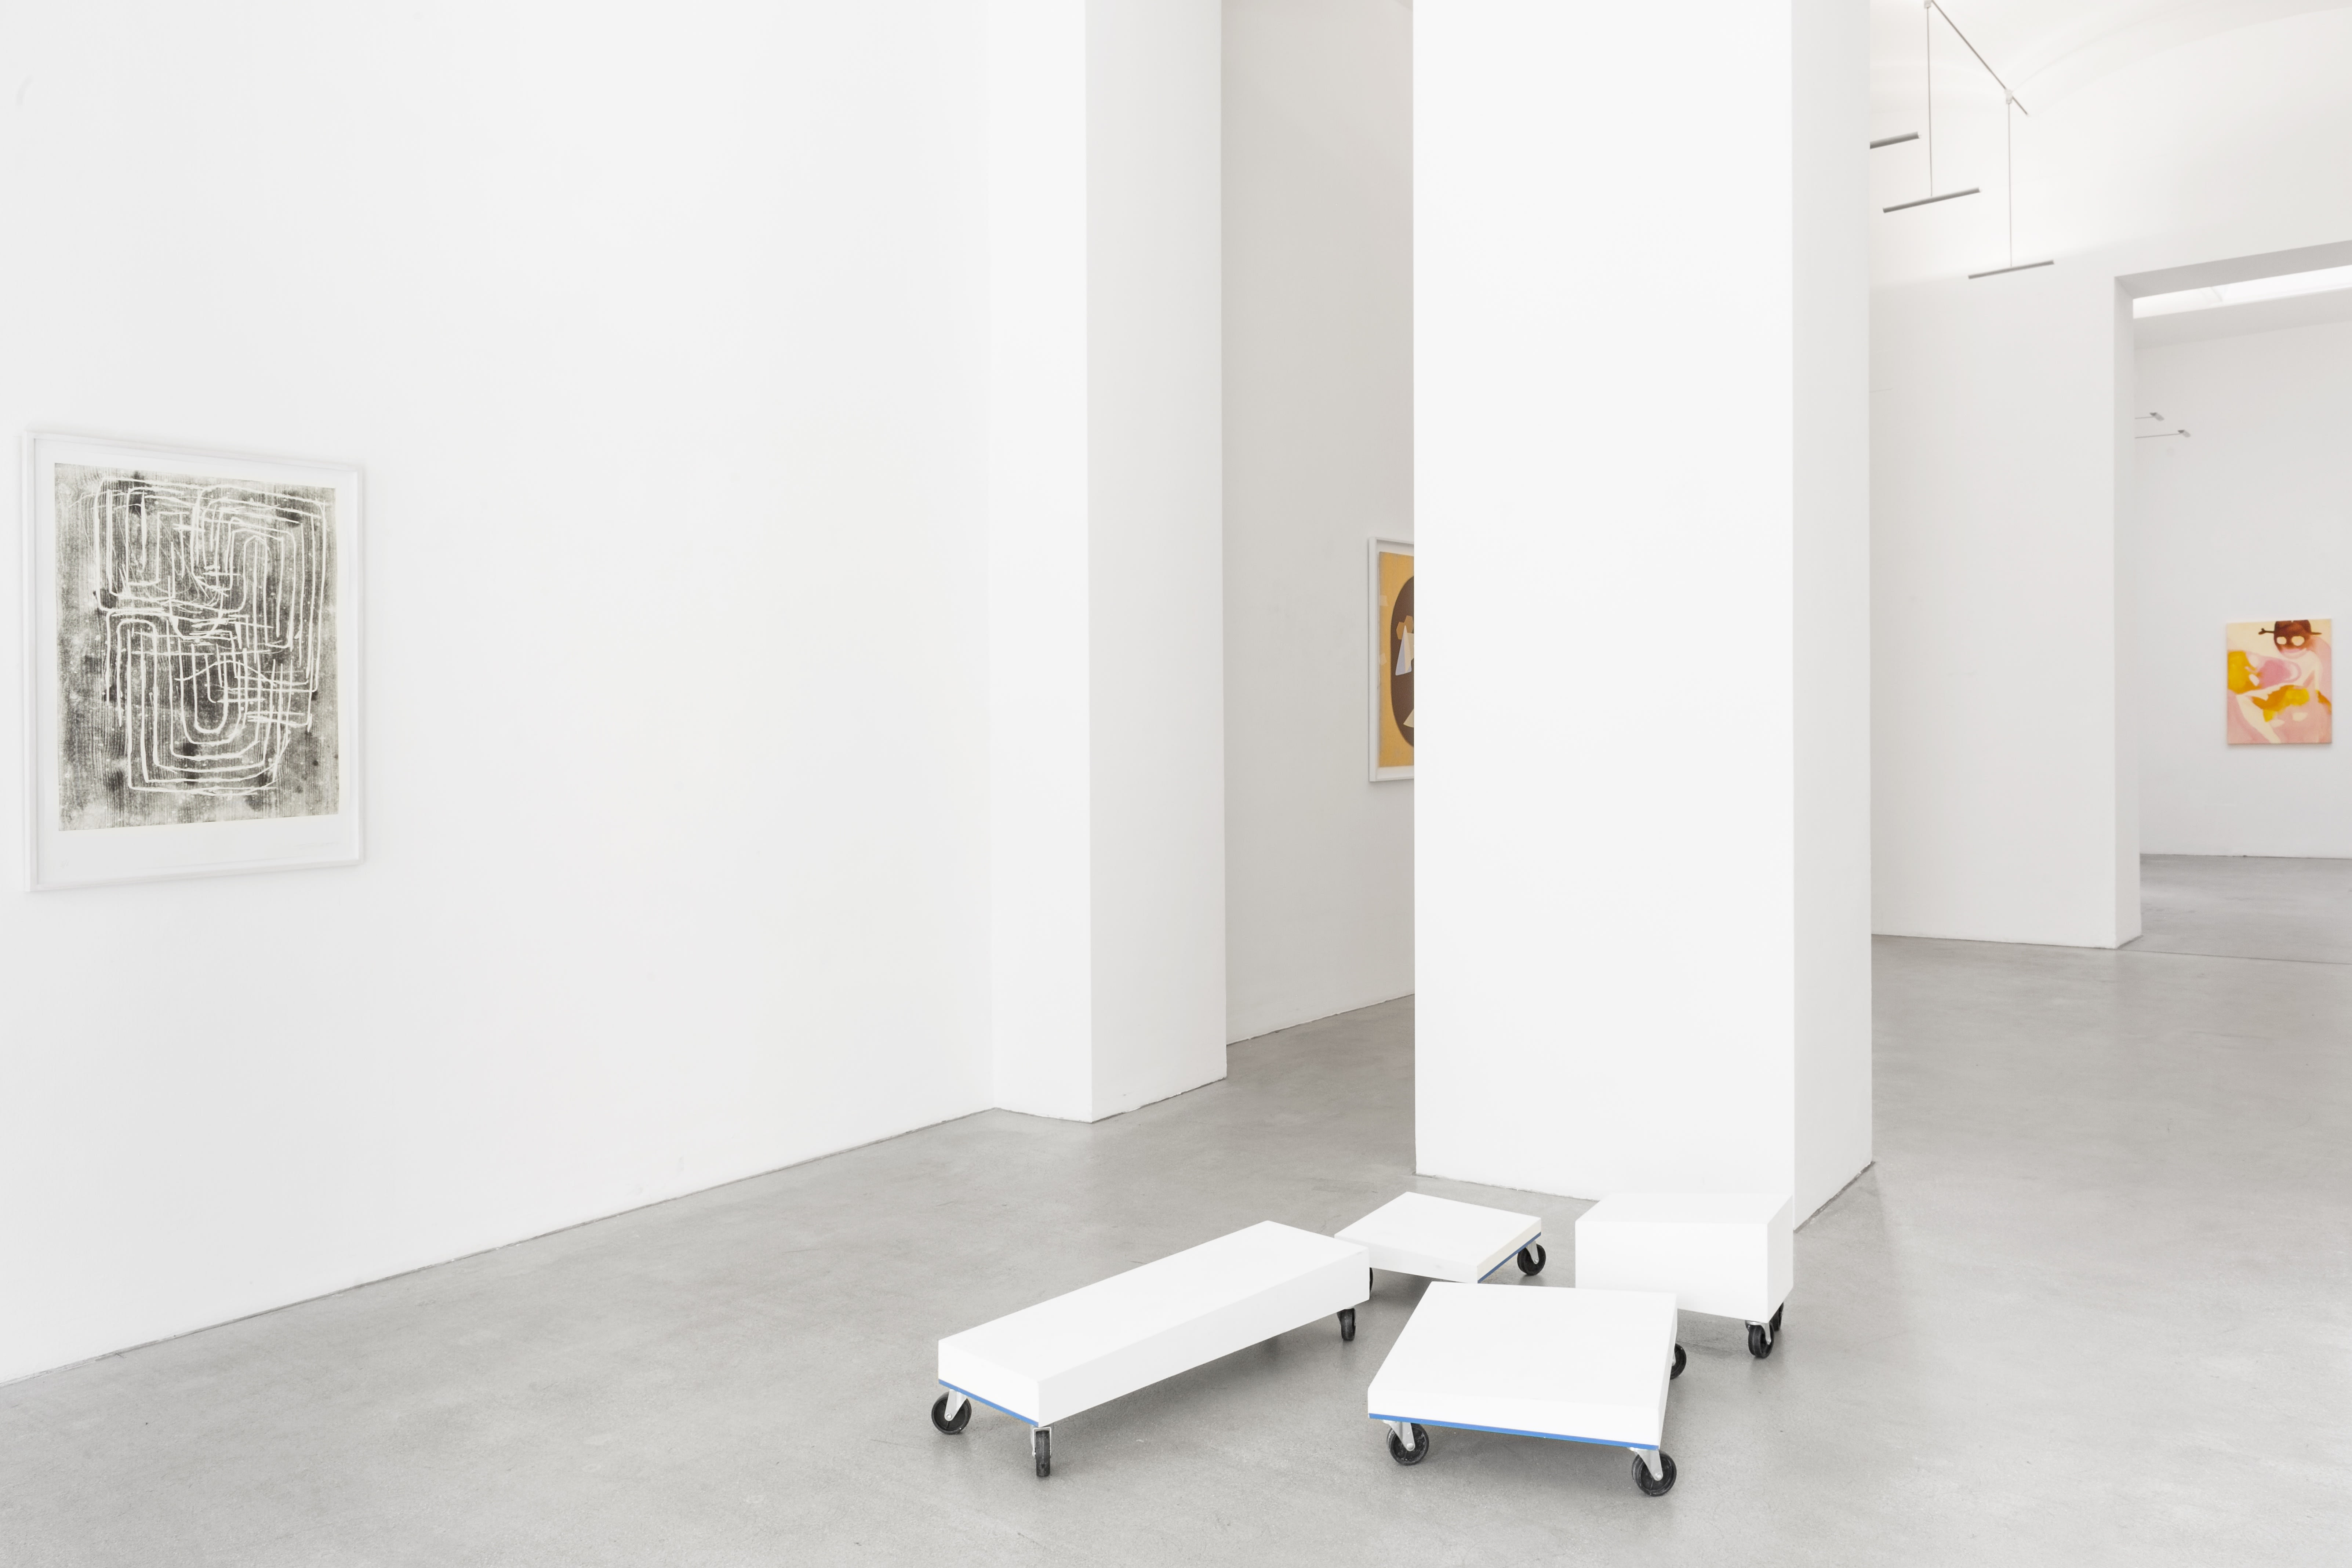 josef zekoff, max landegren, rini tandon, sarah bogner, curated by, hybrides, Unknown identities, installation view, exhbition